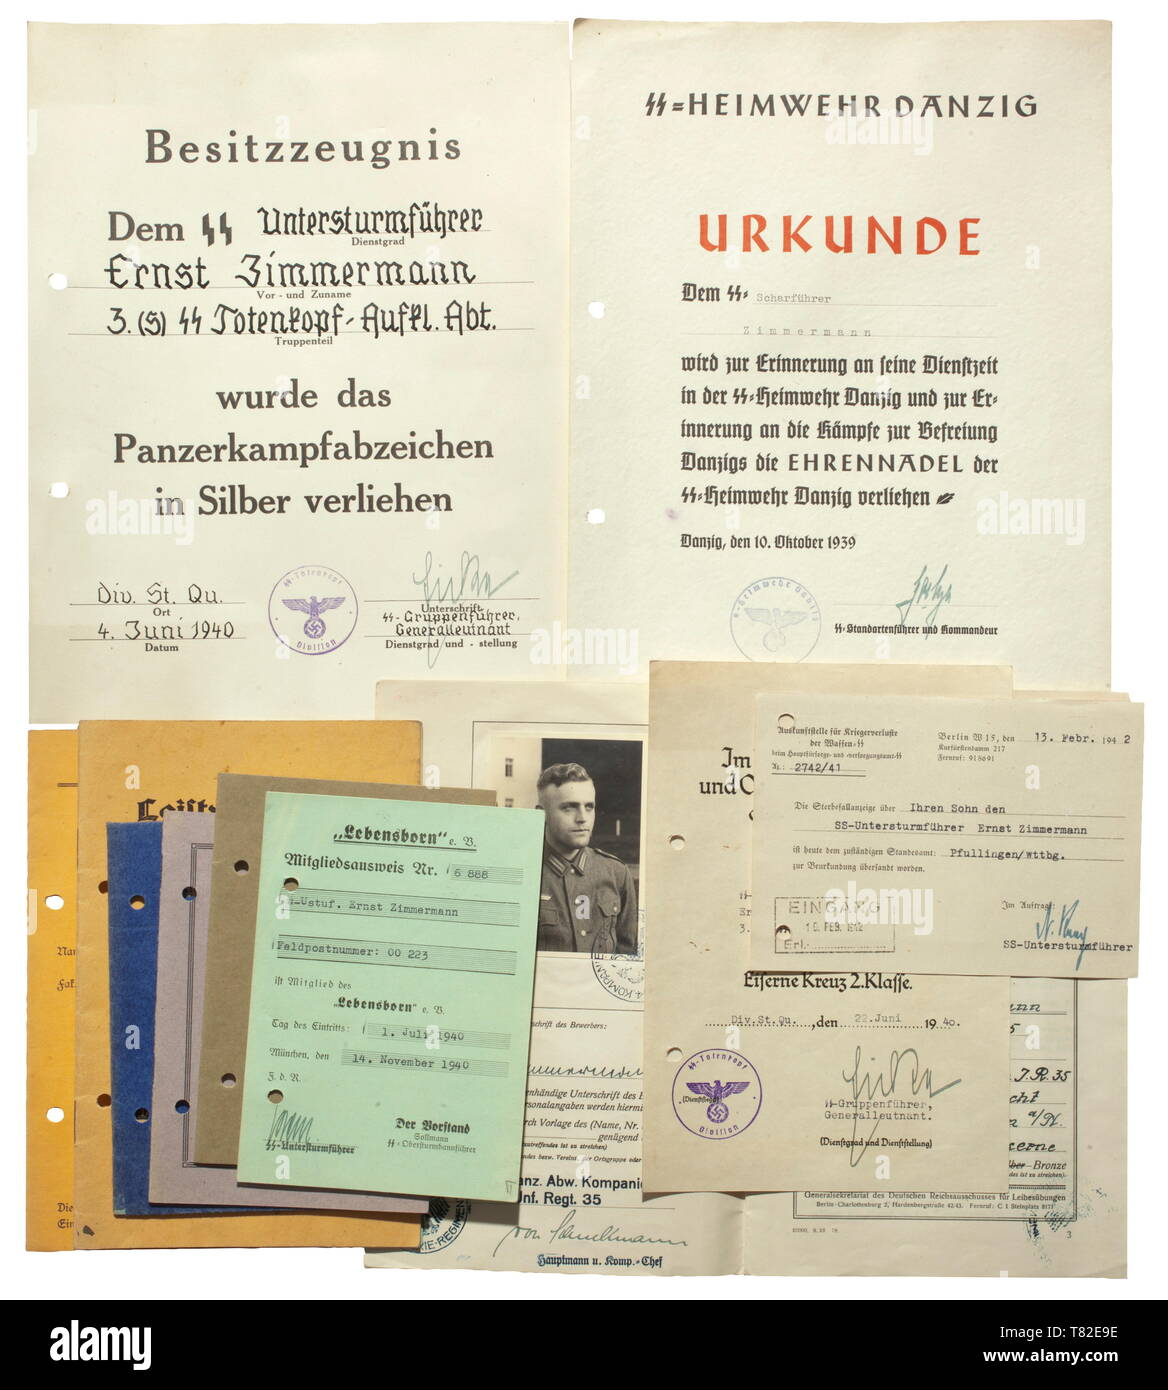 """The estate of Untersturmführer Ernst Zimmermann - Heimwehr Danzig Bicolour rendered document for the (tr) """"Honour Pin"""" of SS-Heimwehr Danzig. Document number """"1415"""" with original signature of the commander, Hans F. Goetze, issued on 10 October 1939. Also the award document for the Iron Cross 2nd Class while with """"3./(s) SS-Totenkopf-Aufkl.-Abtlg."""" with original signature of Gruppenführer and Generalleutnant of the Waffen-SS Theodor Eicke, issued on 22 June 1940 while with SS-Division """"Totenkopf"""". Included is a decorative award document for the Panzer Assault Badge in Silver, Editorial-Use-Only Stock Photo"""